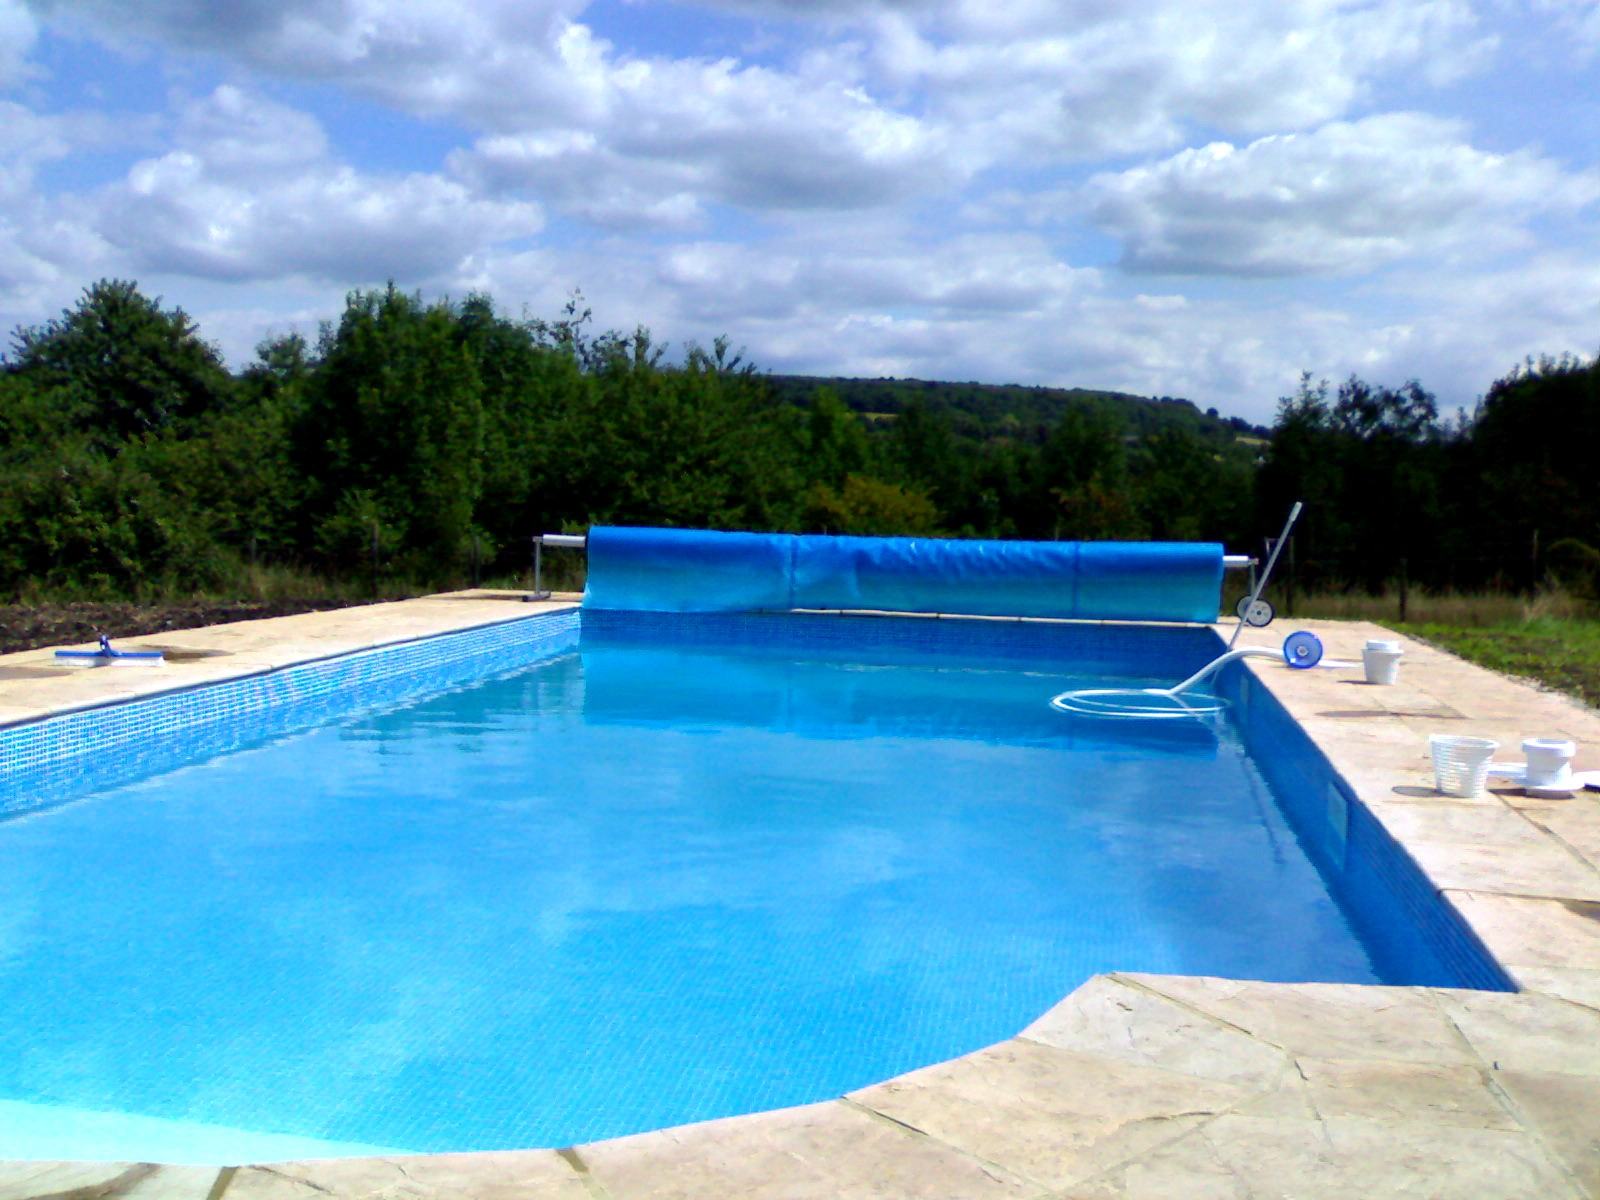 Pick The Best Pool Chemicals For The Swimming Pool Solar Pool Cover Protects Your Good Times